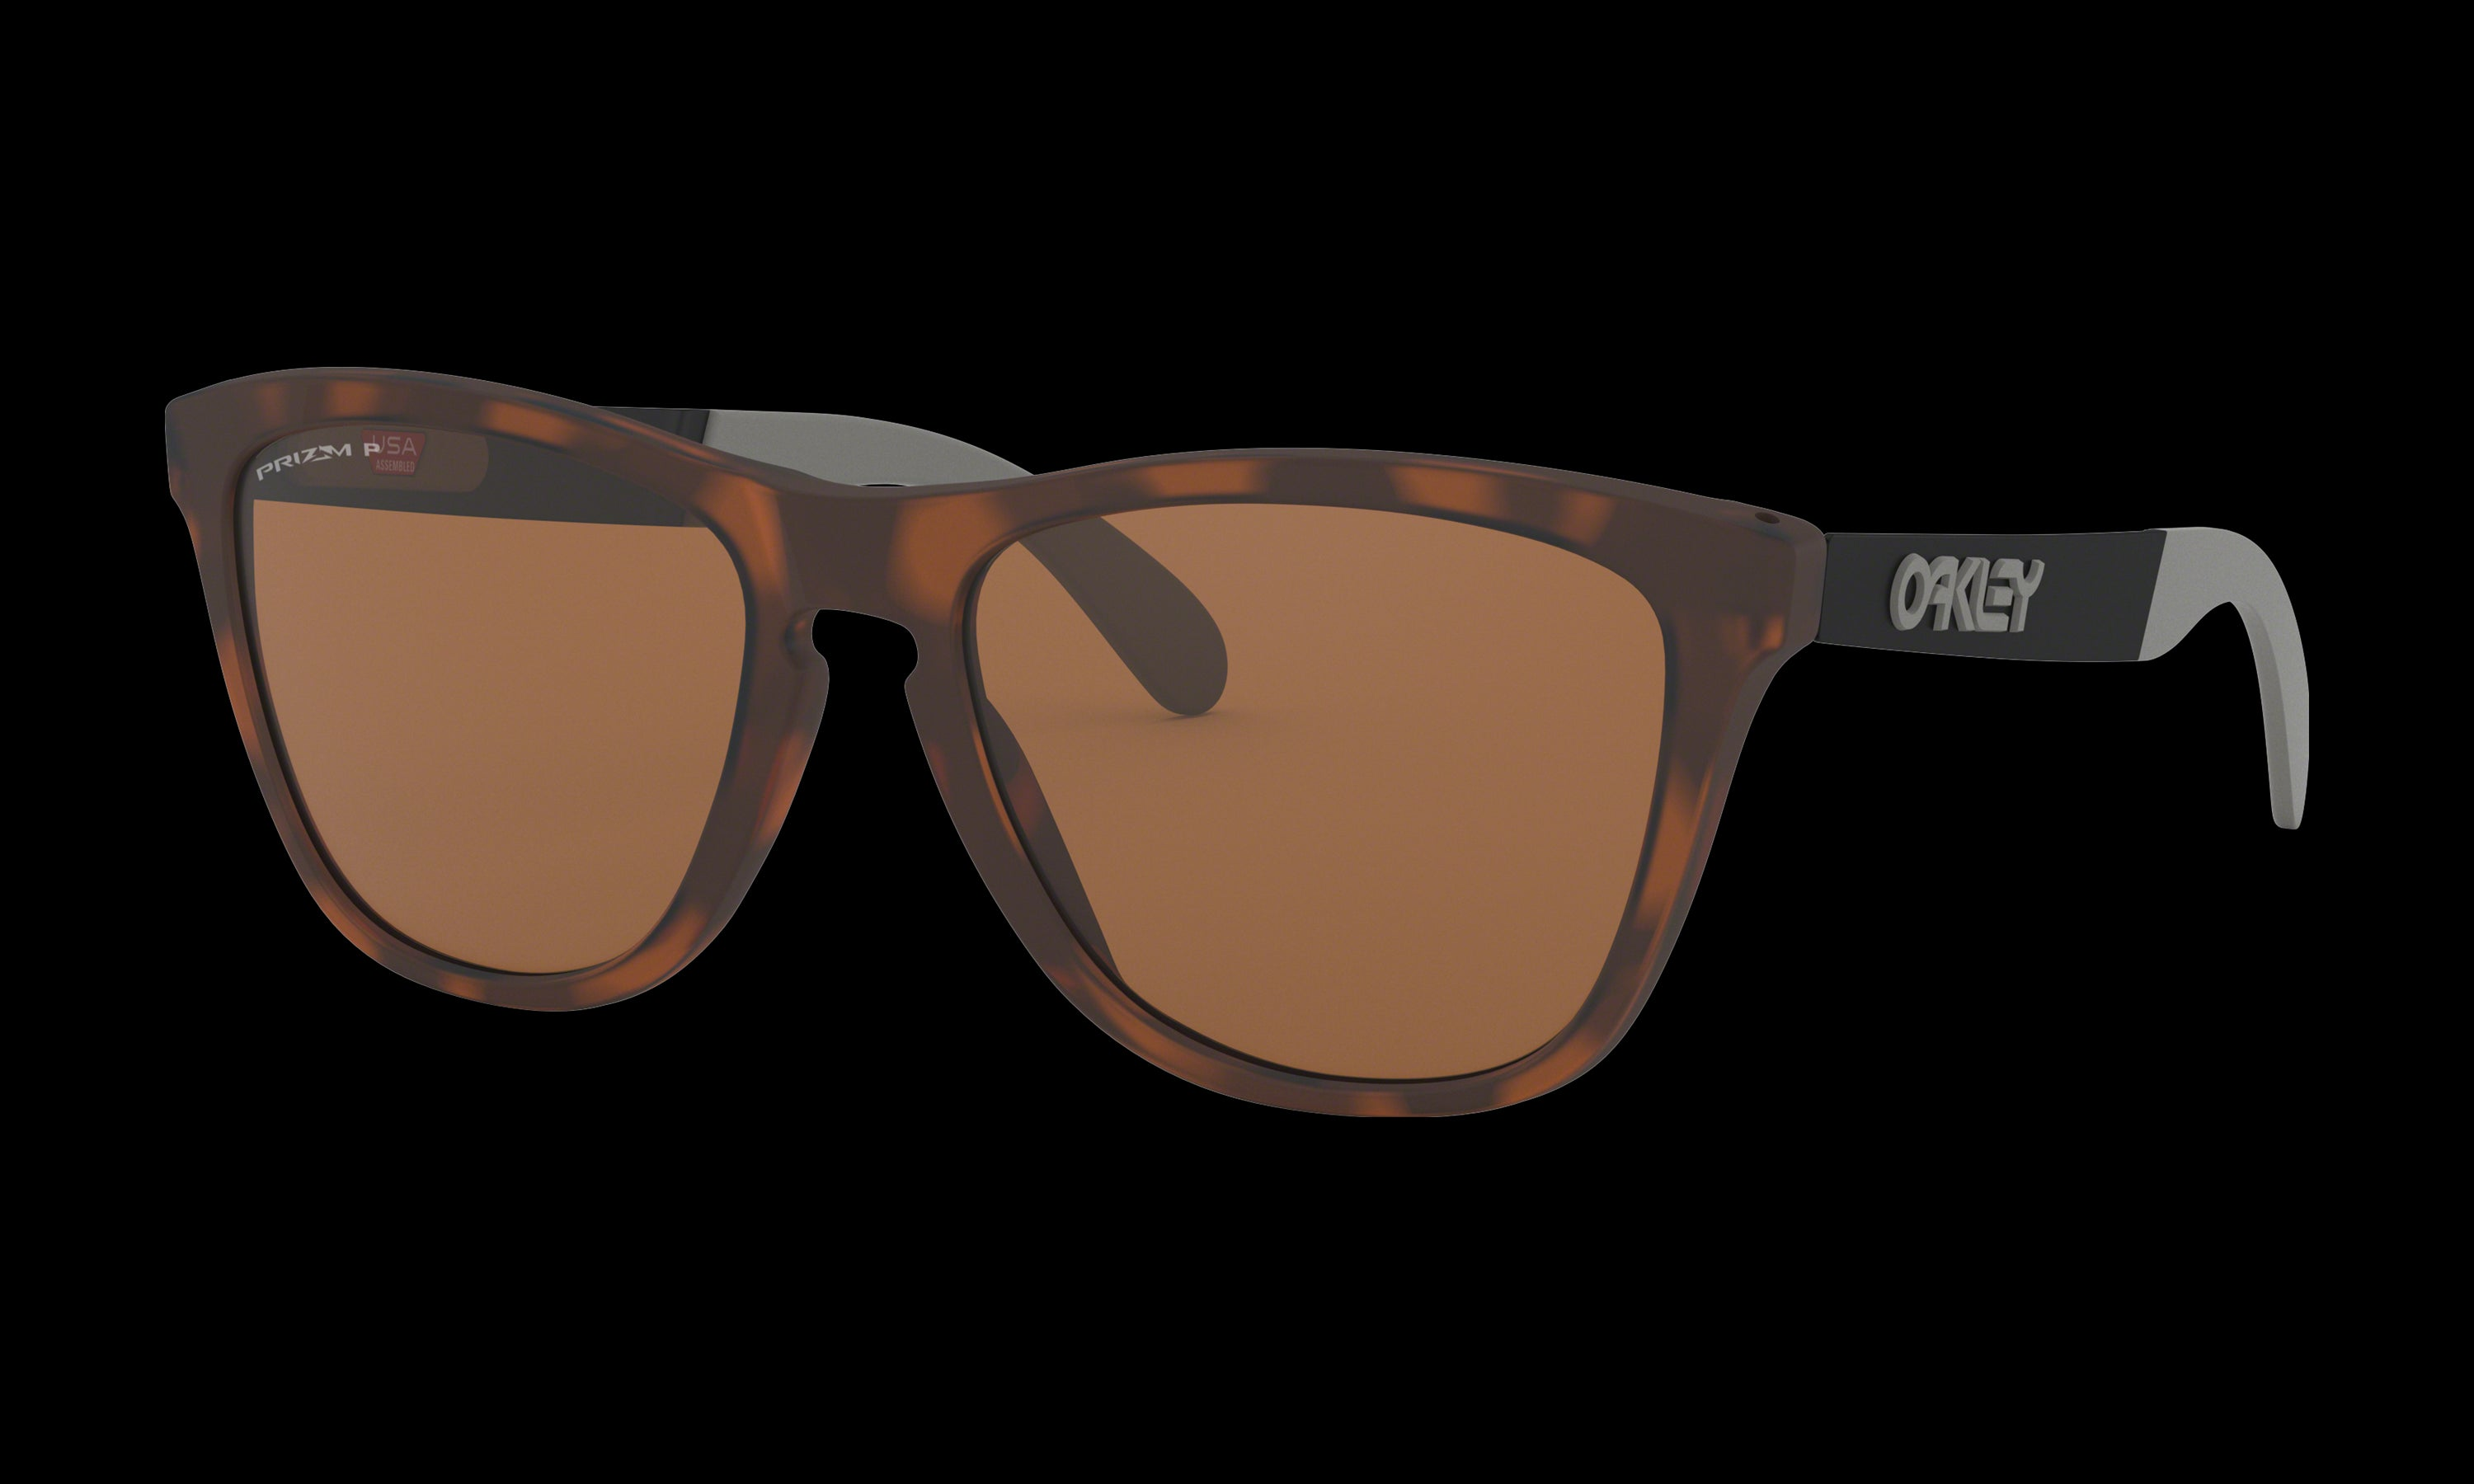 Women's Oakley Frogskins Mix Sunglasses in Matte Brown Tortoise Prizm Tungsten Polarized